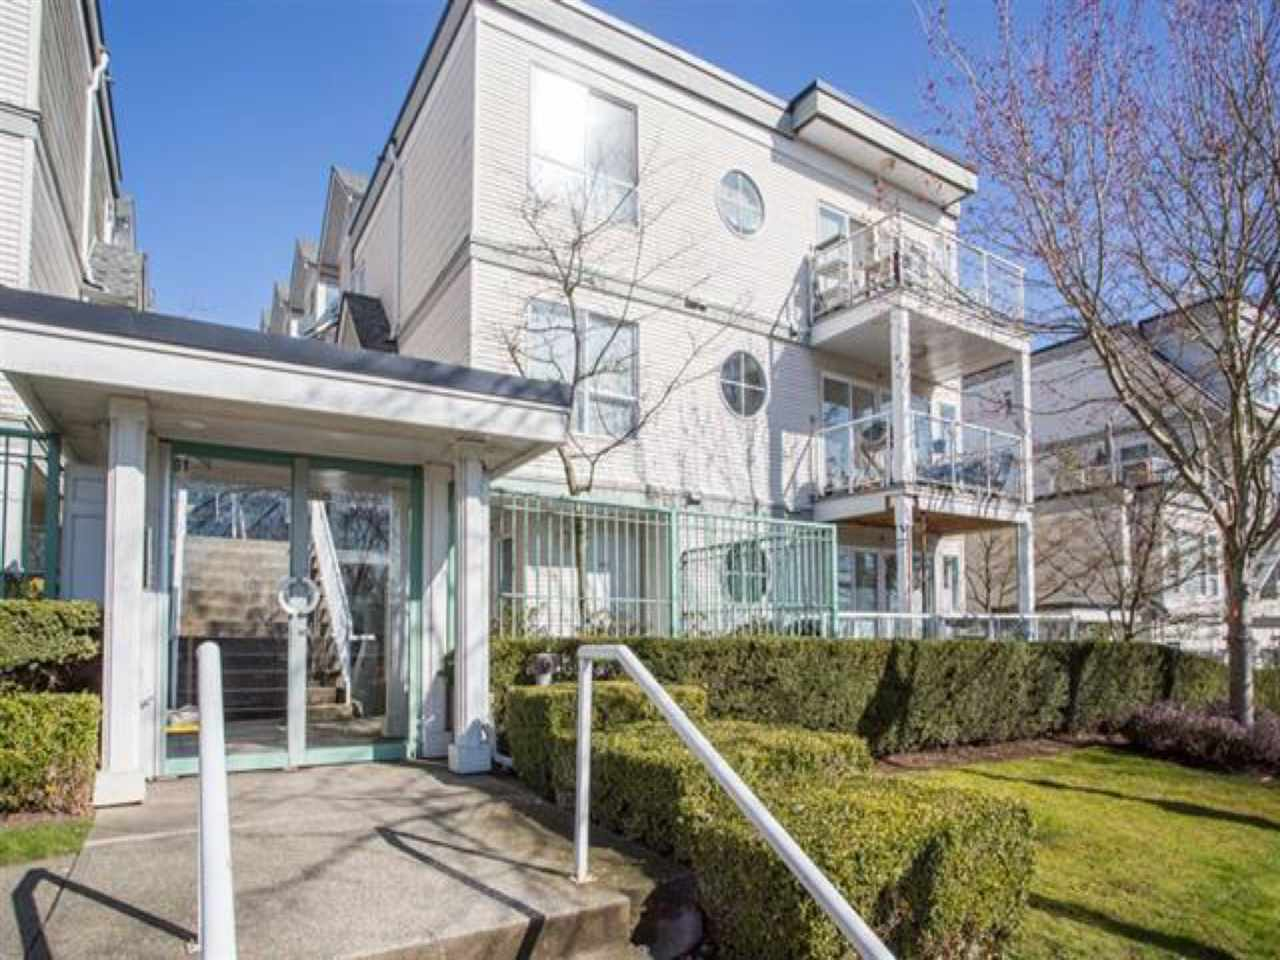 Buliding: 2728 Chandlery Place, Vancouver, BC